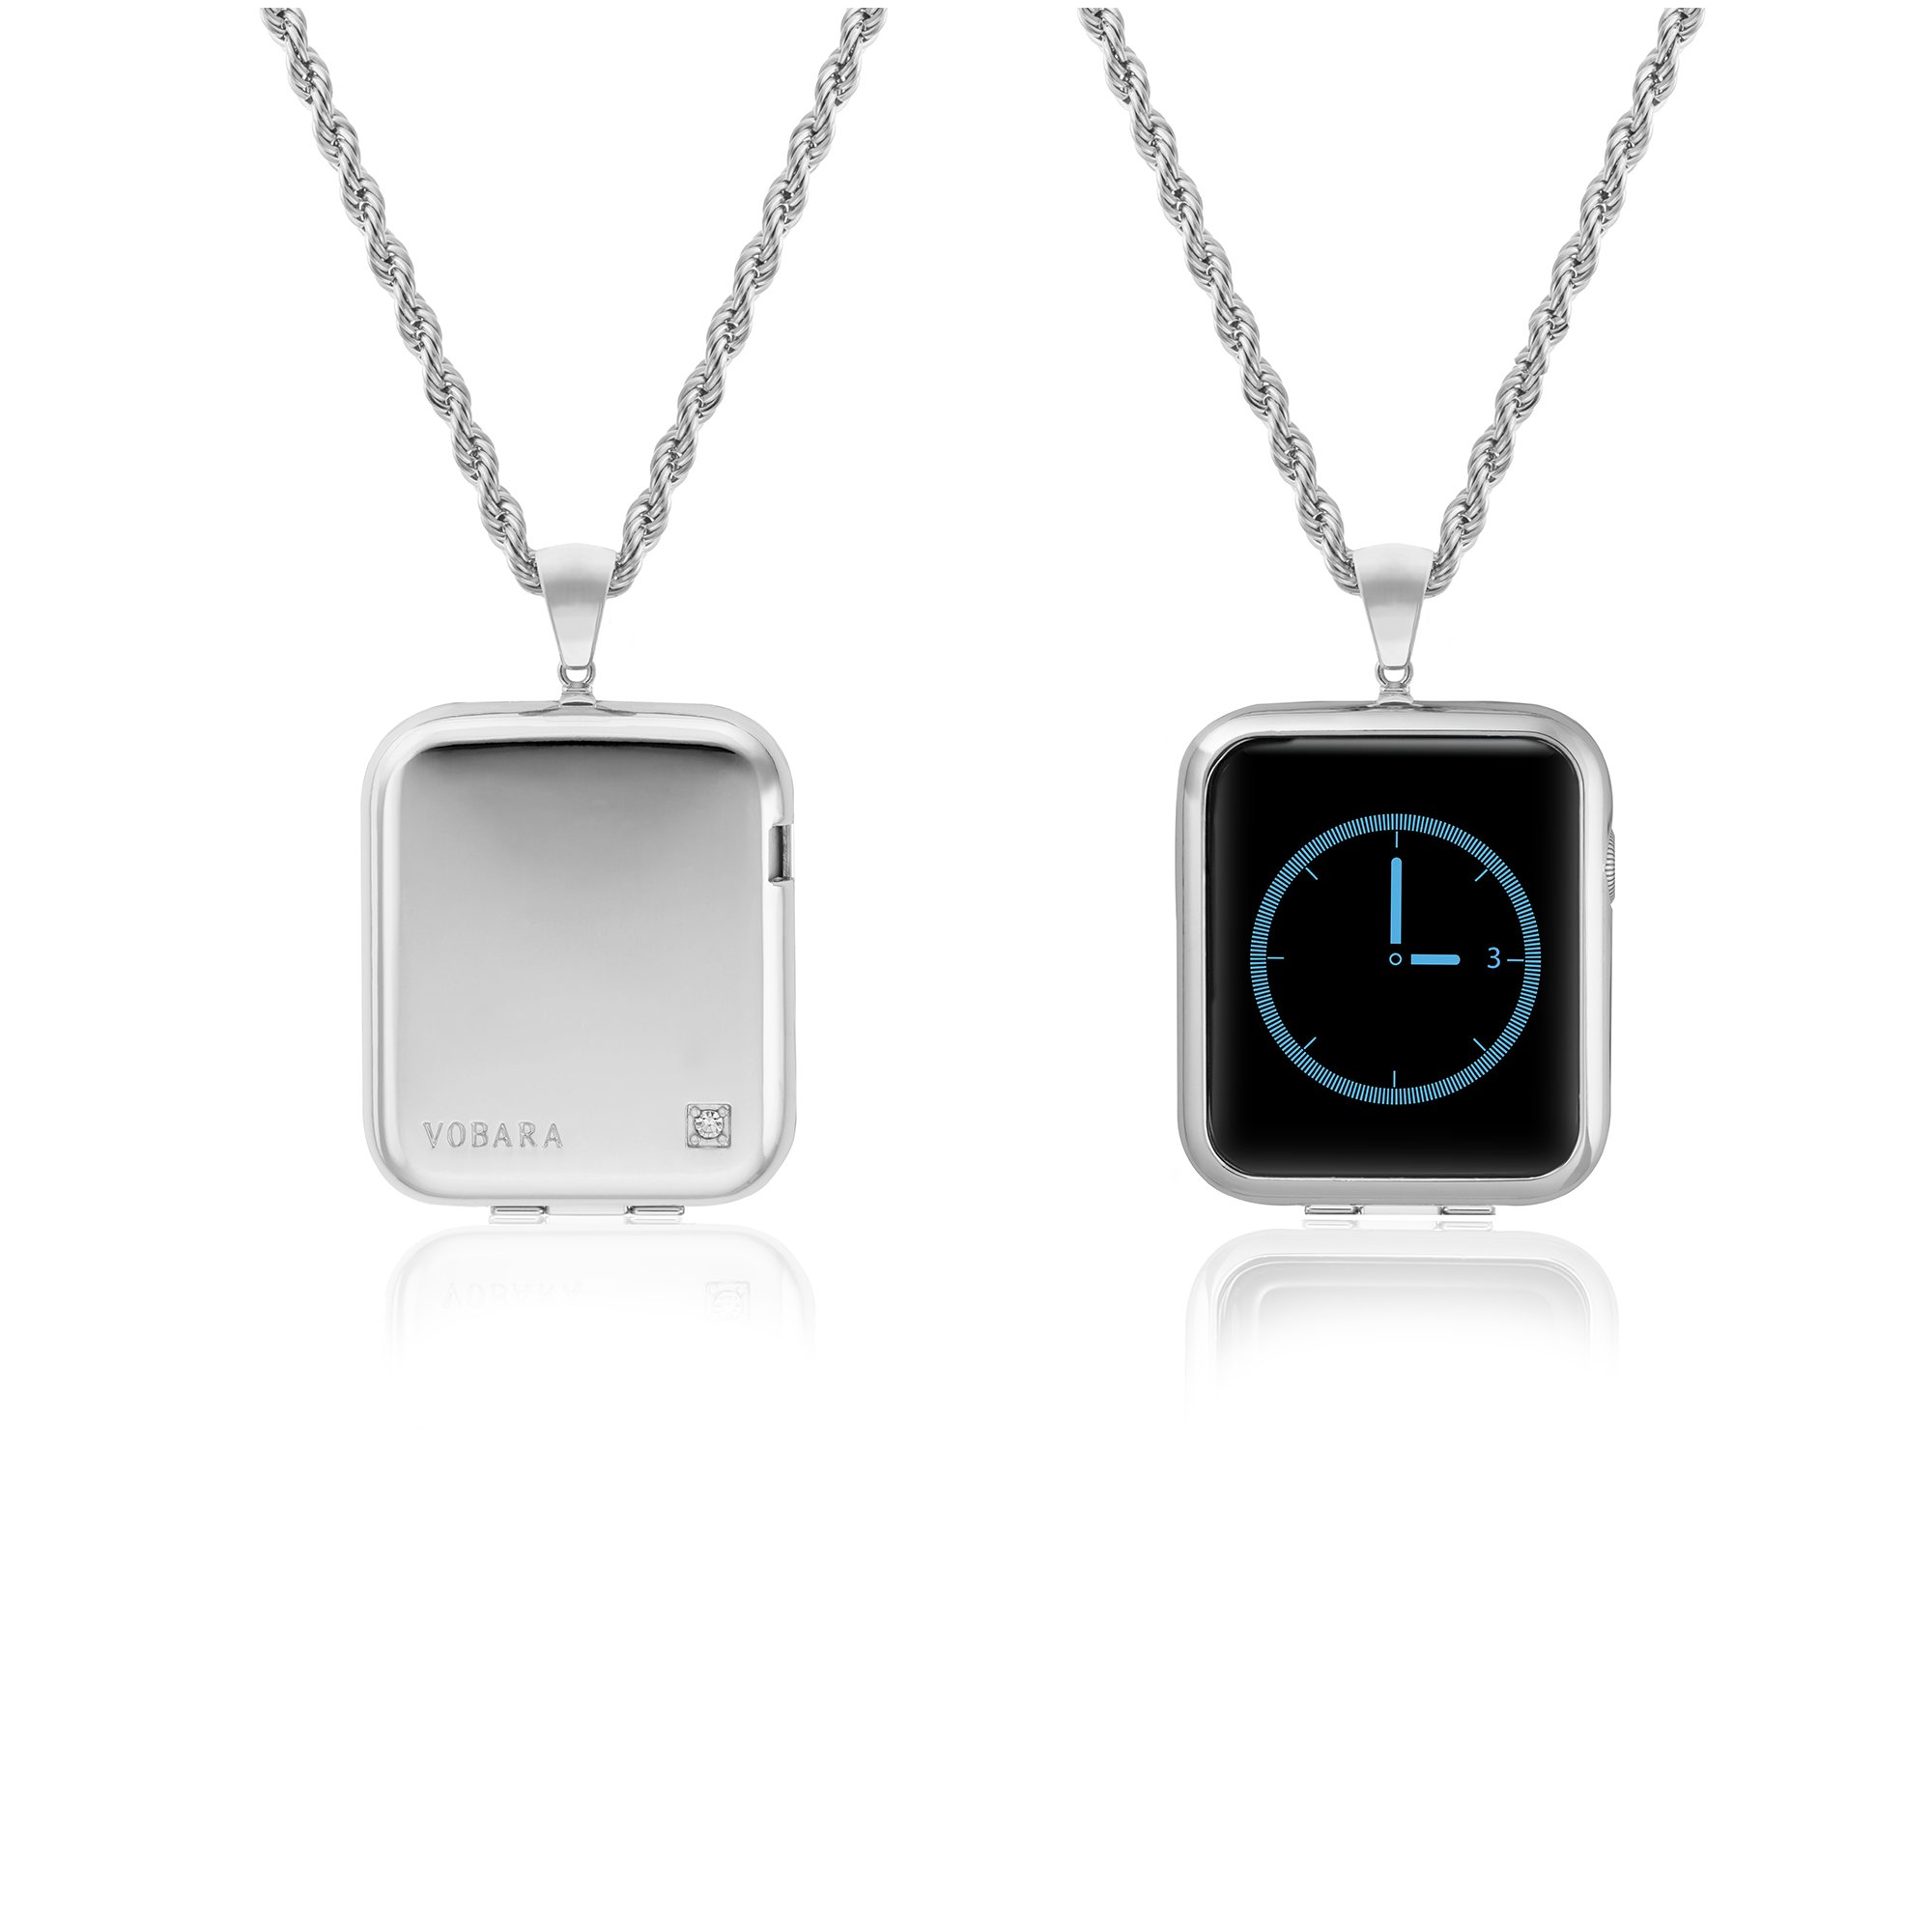 Necklace for Apple Watch with Protective Case by